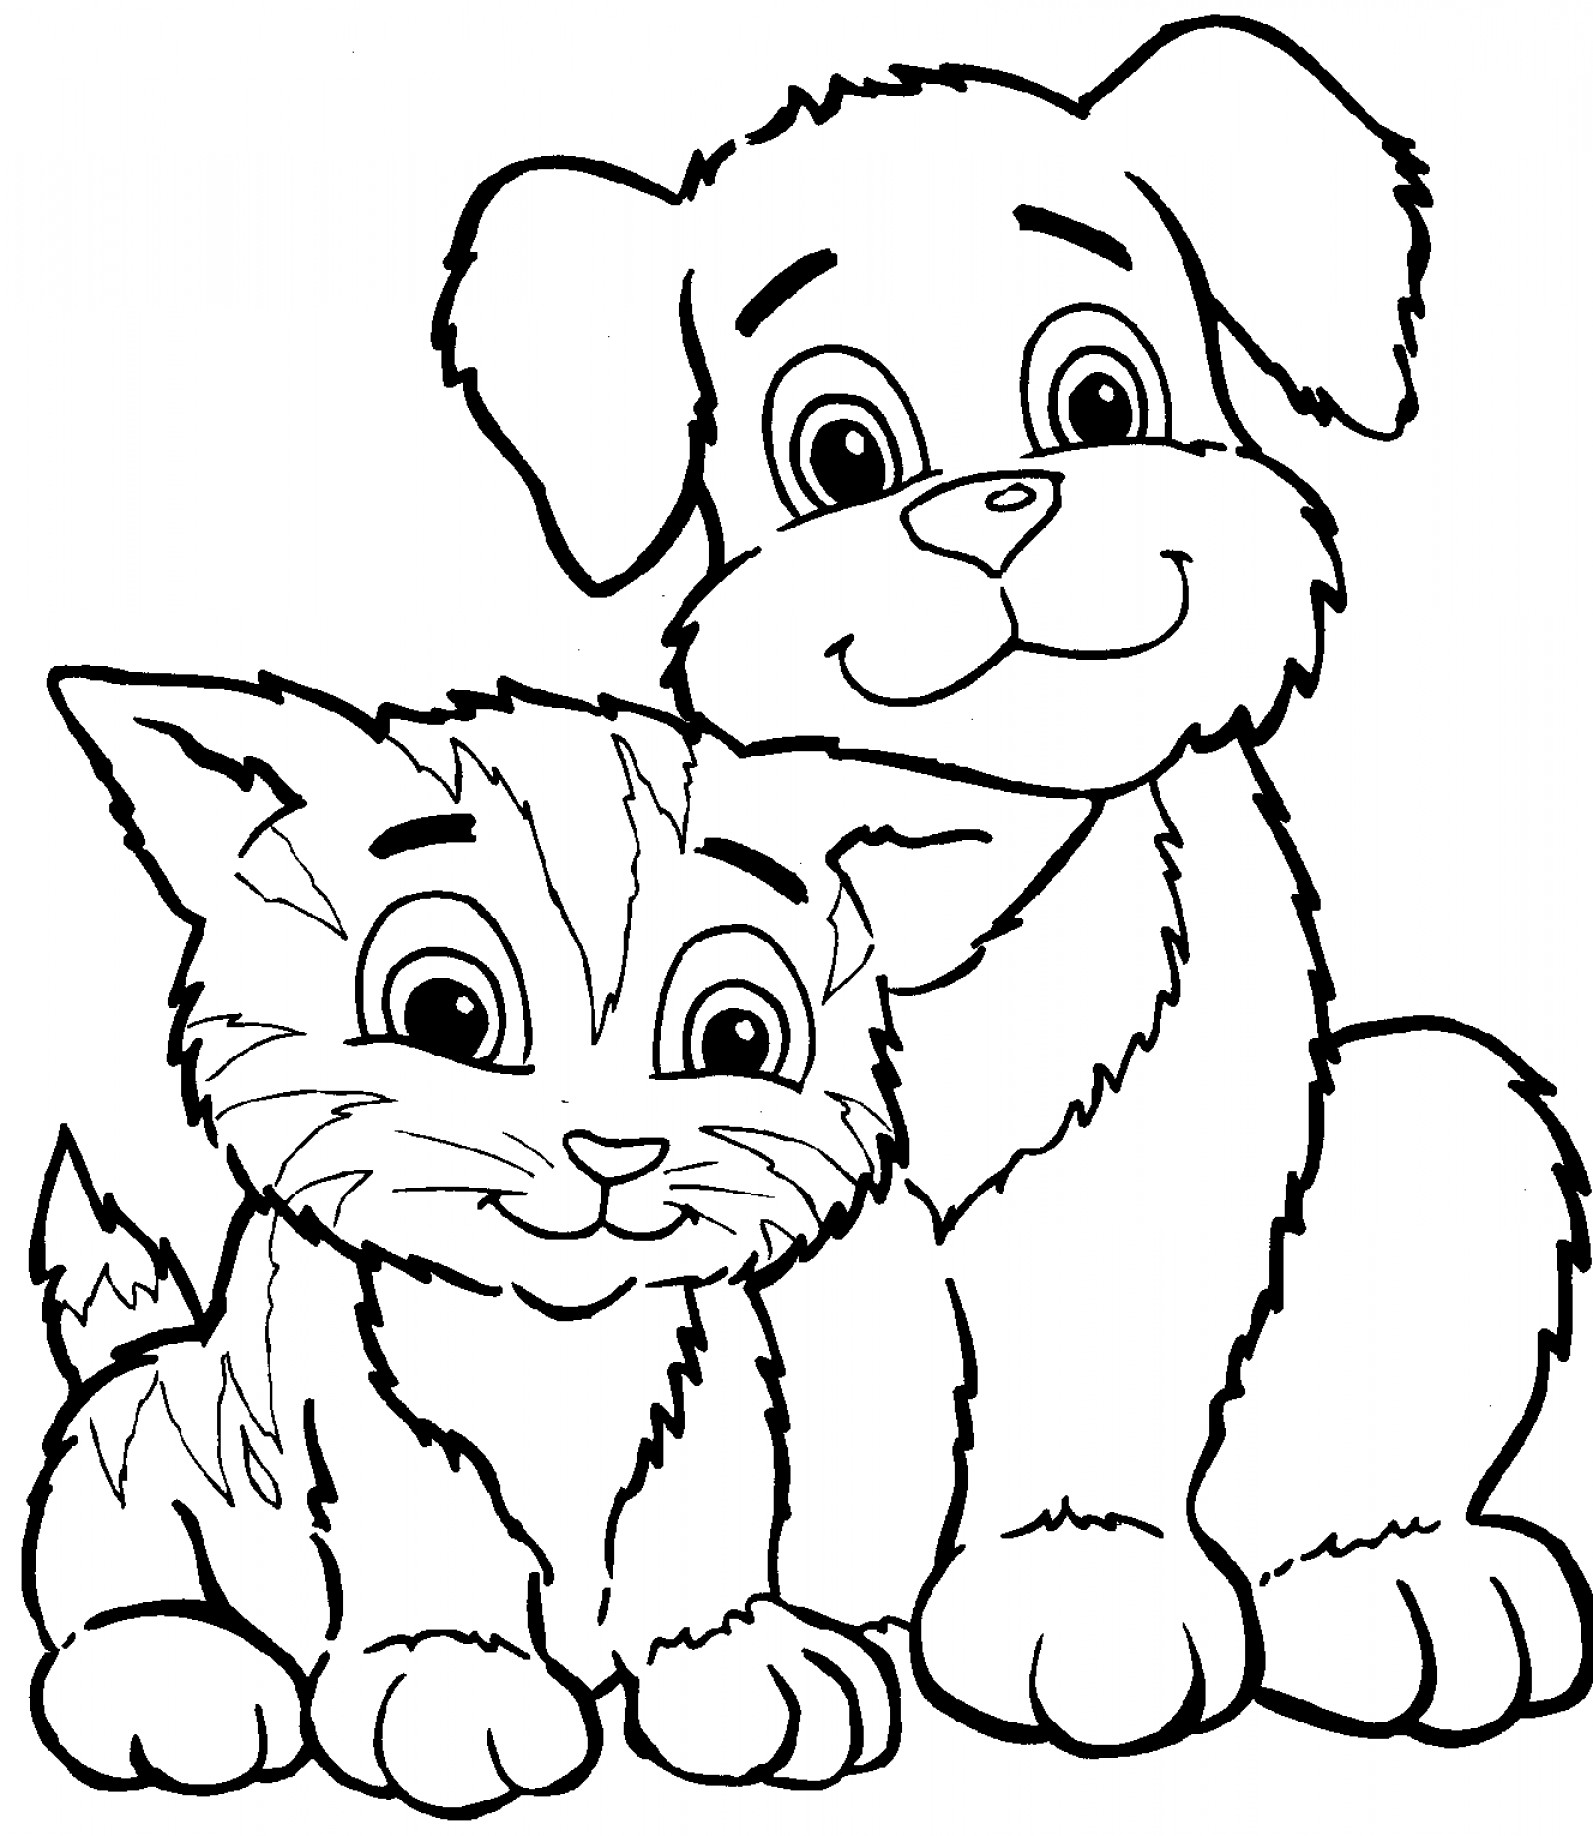 46146 Dog free clipart.